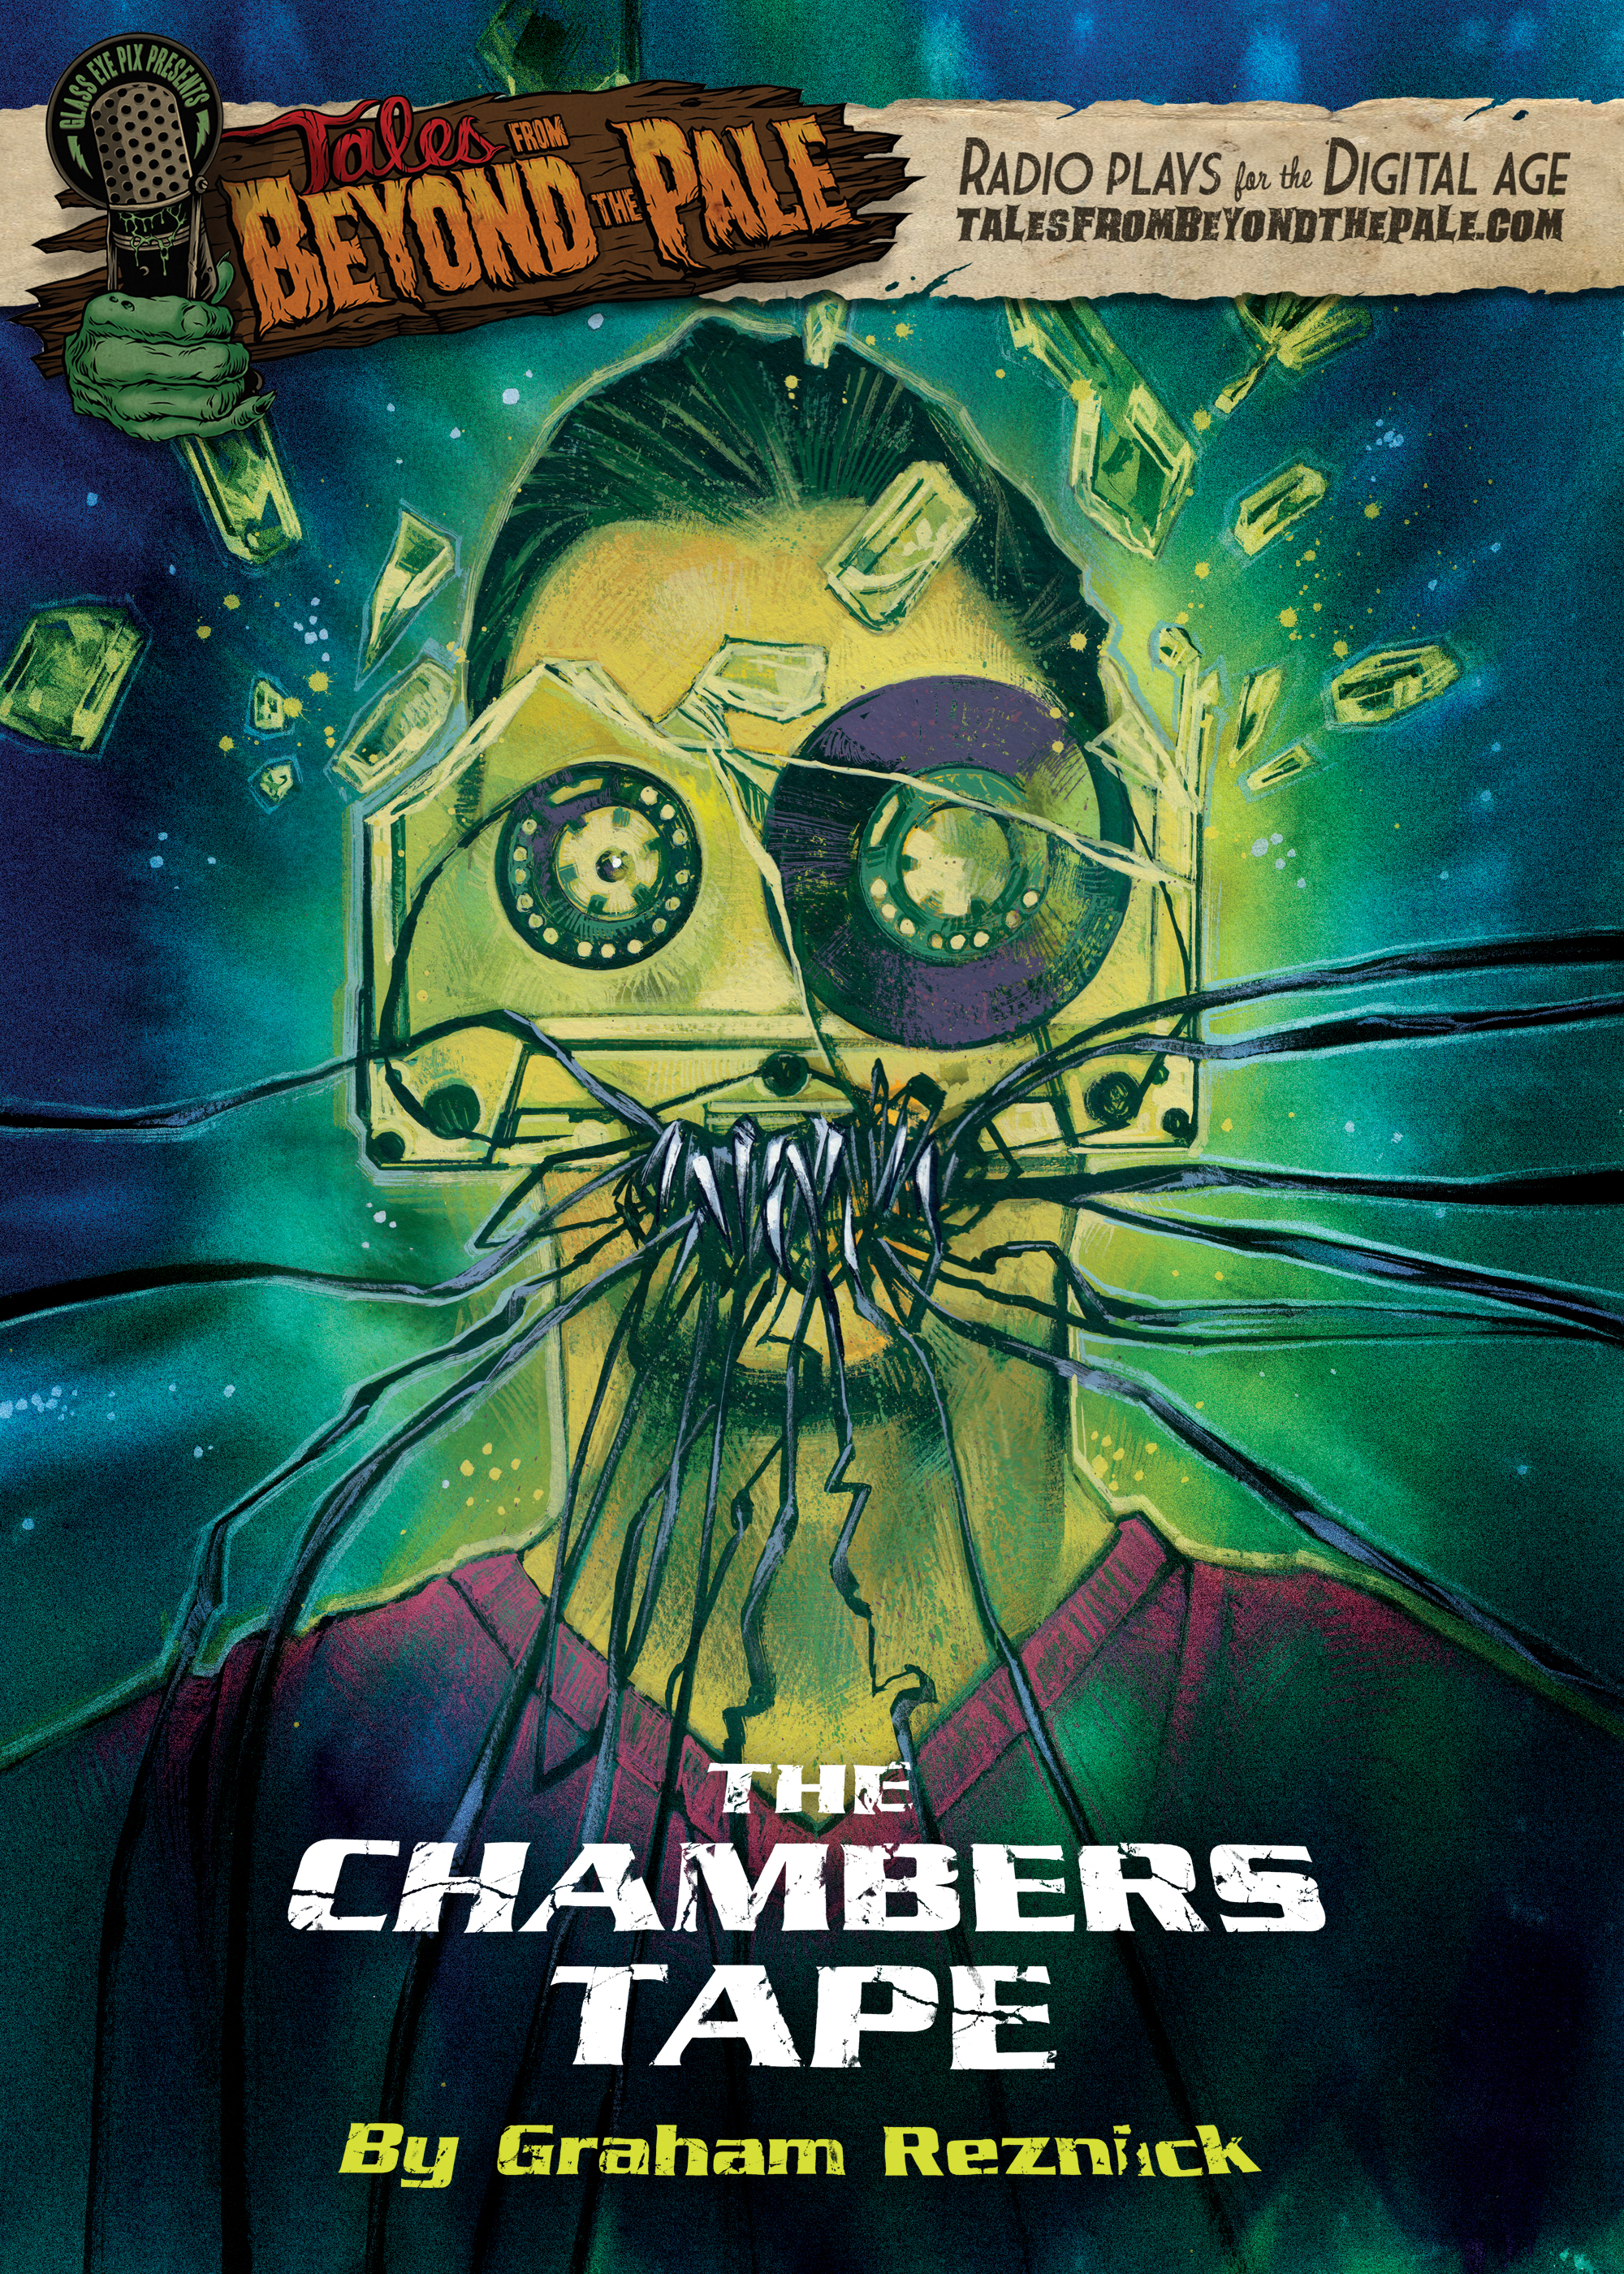 The Chambers Tape